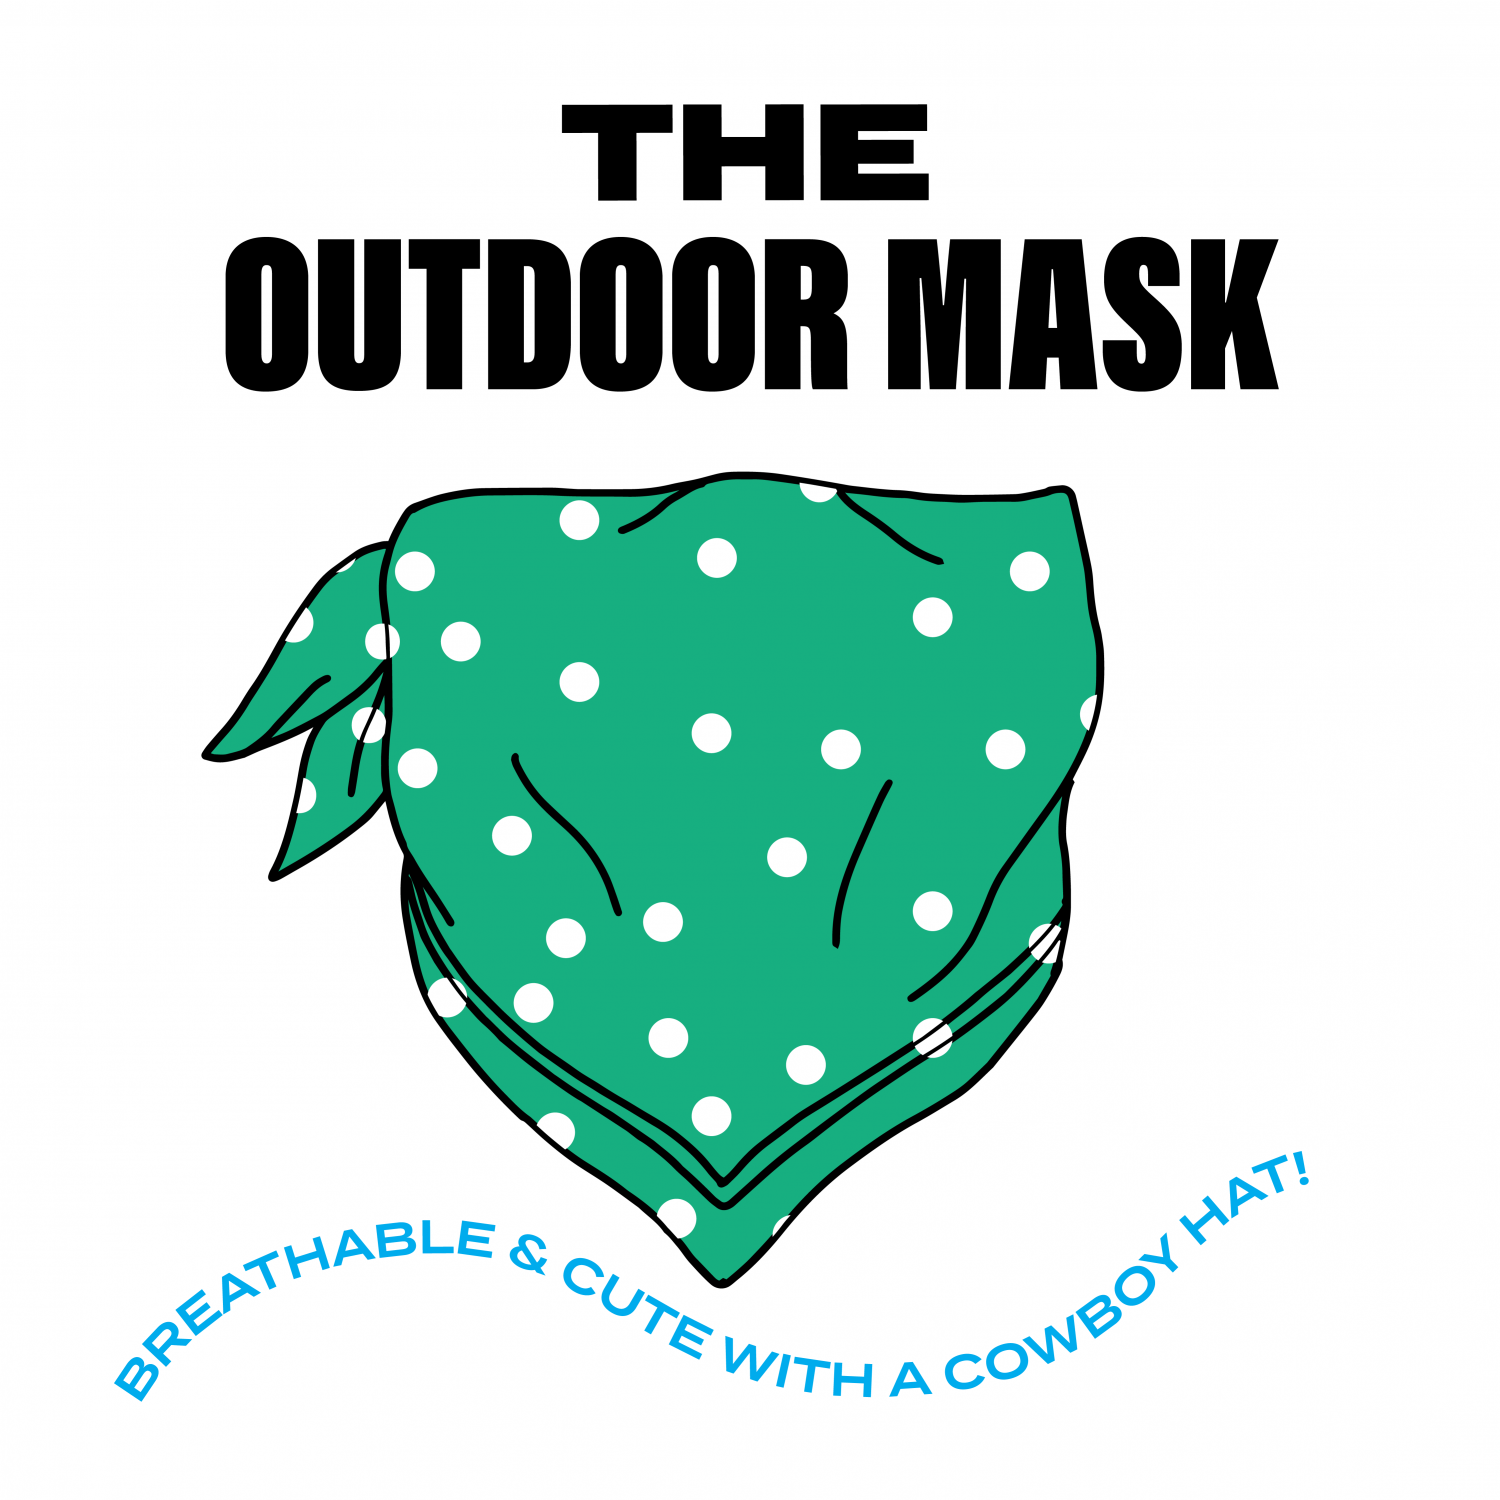 The Outdoor Mask